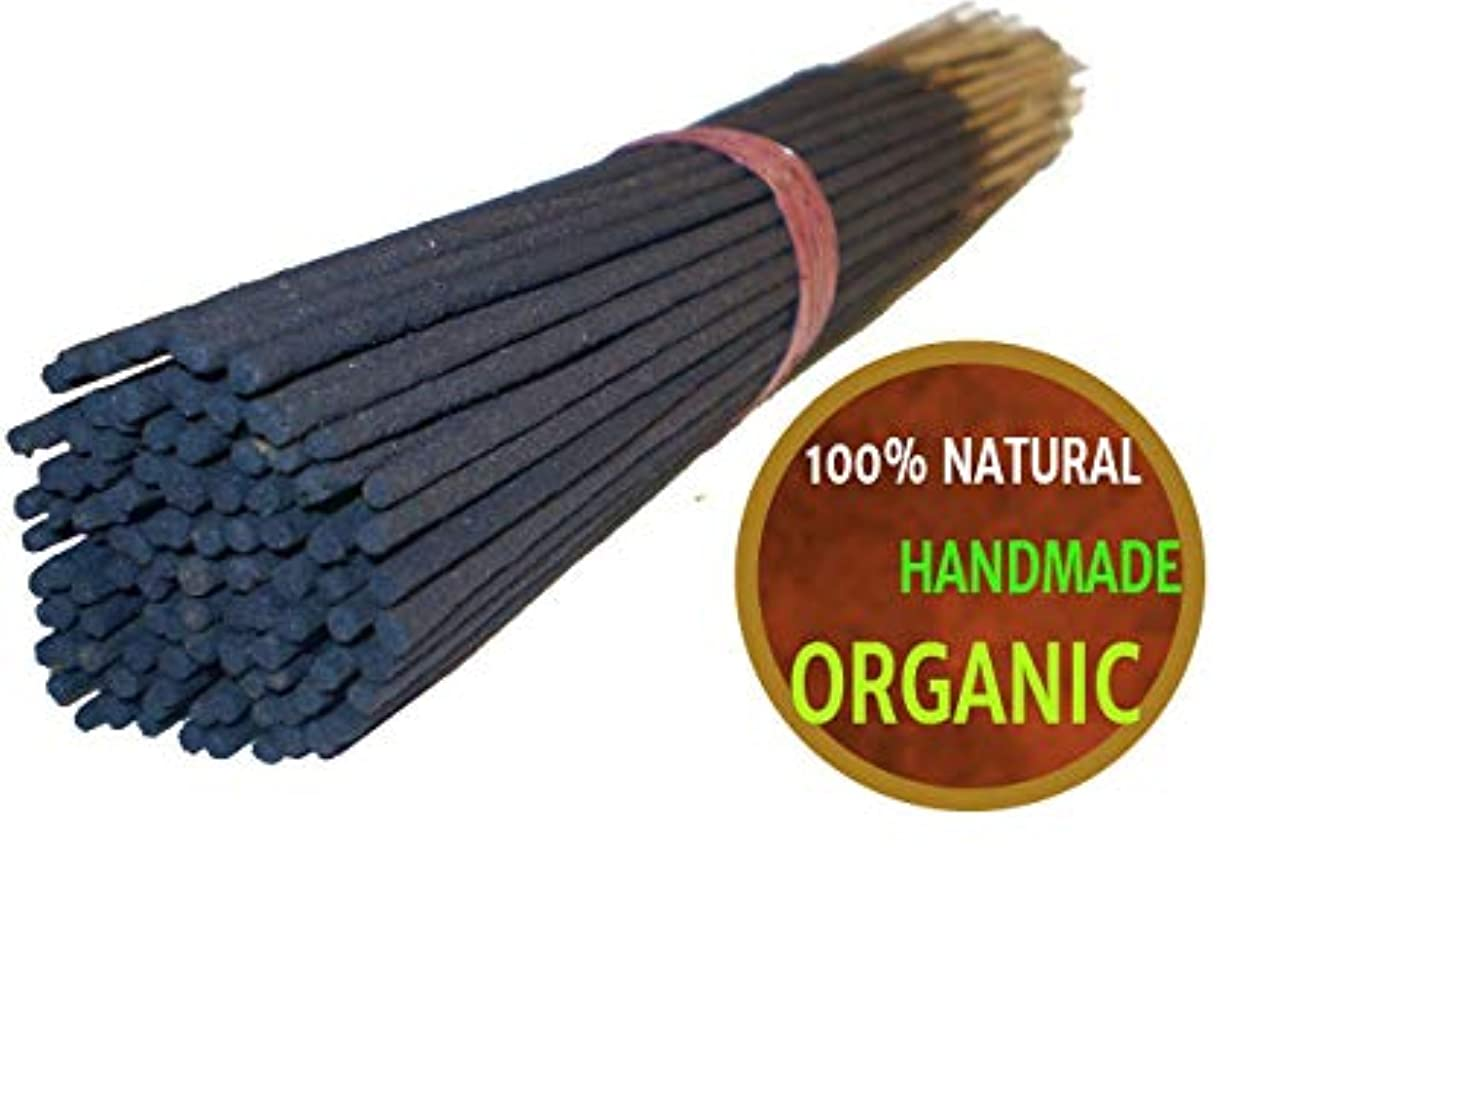 ボイコット株式手がかりYajna Frankincense And Myrrh 100% Natural Incense Sticks Handmade Hand Dipped The Best Woods Scent 100 Pack